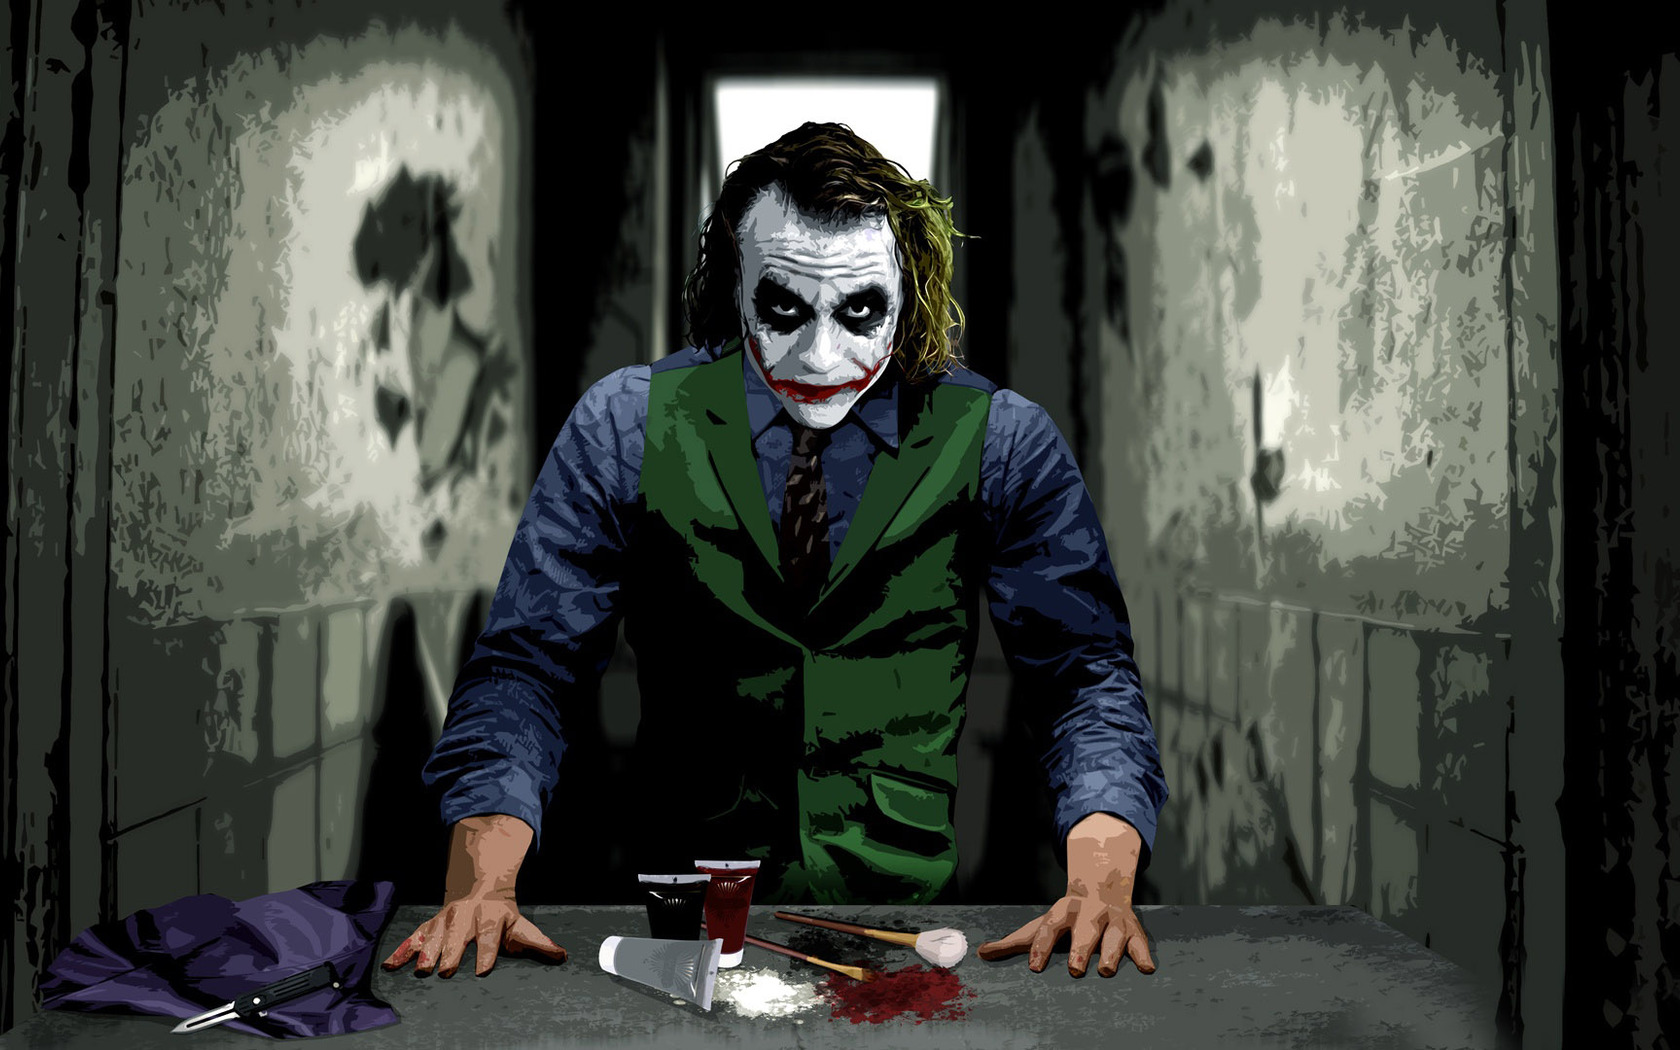 Joker  Batman wallpaper 11289 1680x1050